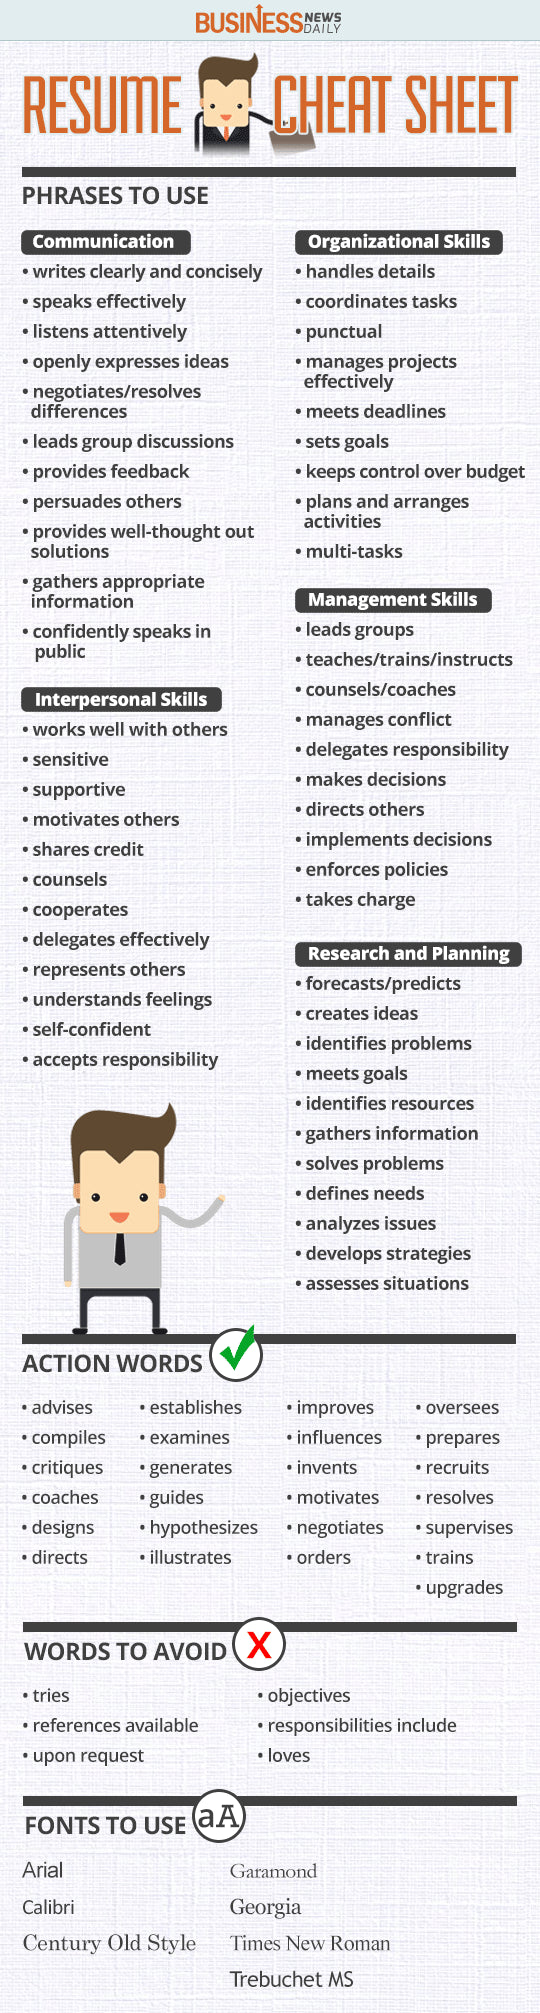 Ultimate Resume | The Ultimate Resume Cheat Sheet